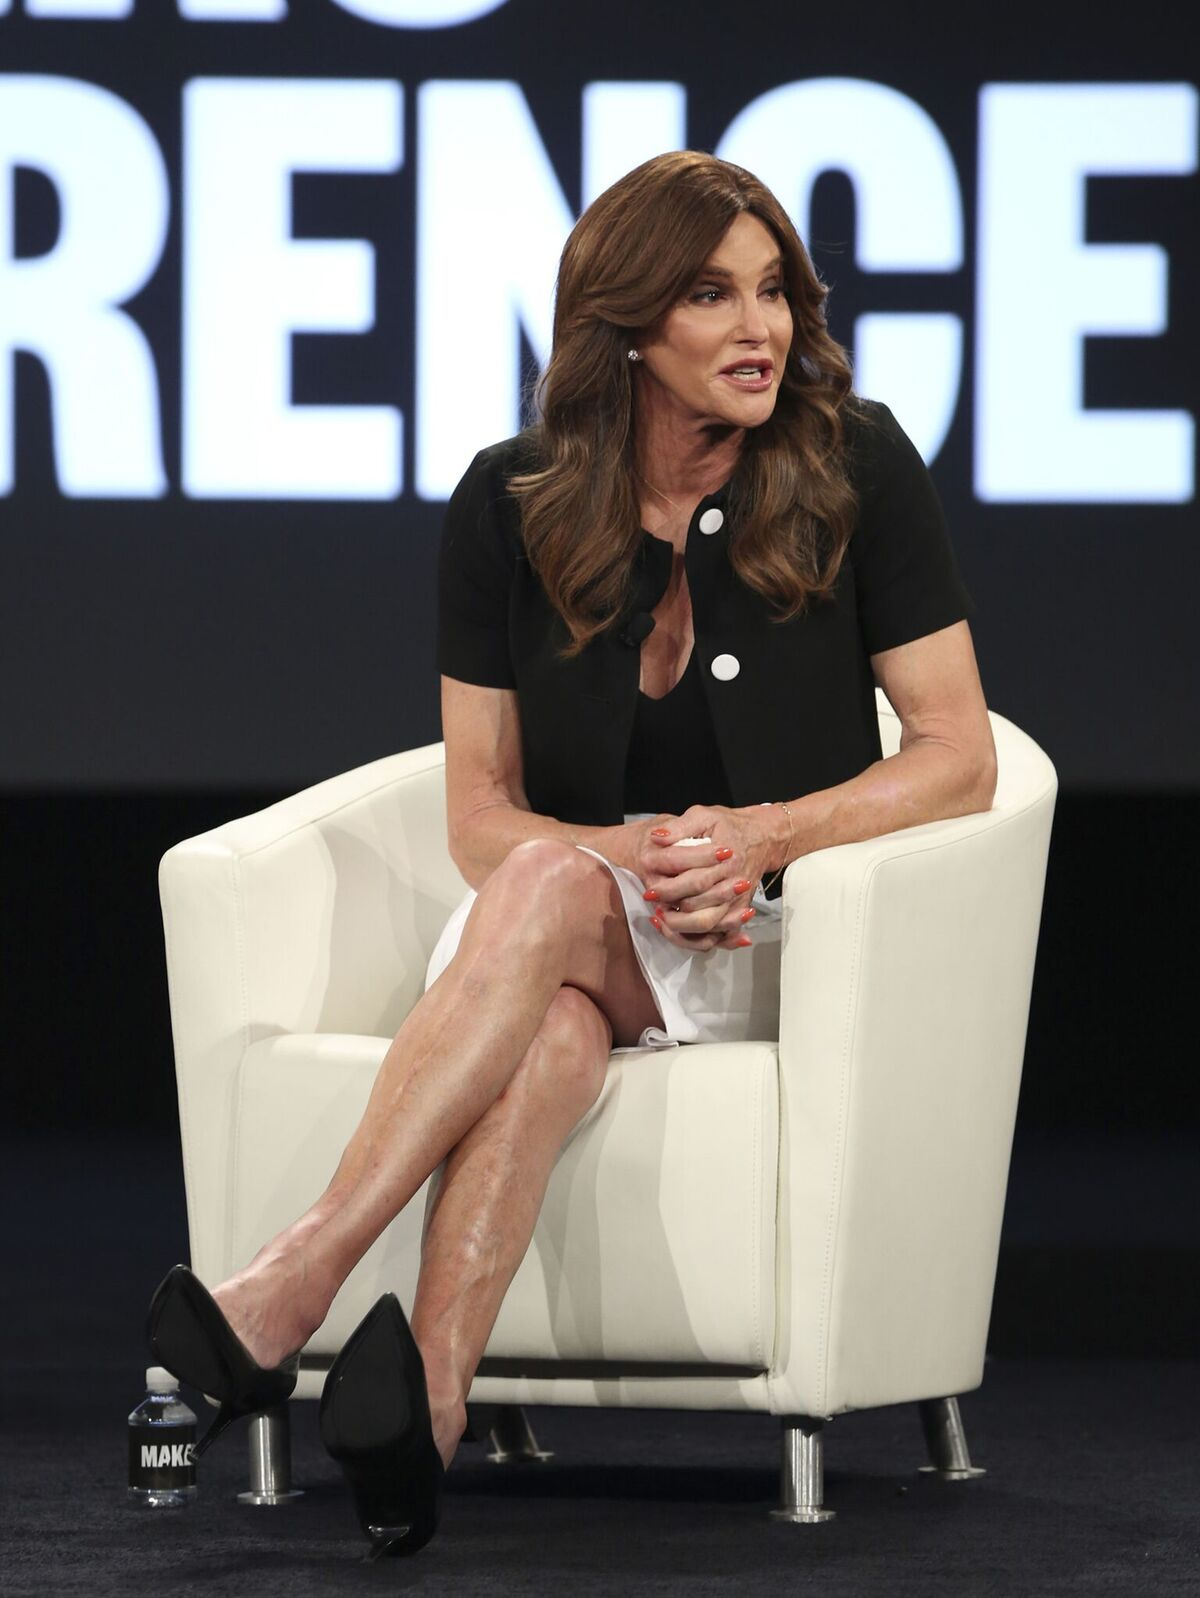 Caitlyn Jenner at the MAKERS Conference Day 2 on February 2, 2016, in Rancho Palos Verdes, California | Photo: Jonathan Leibson/Getty Images